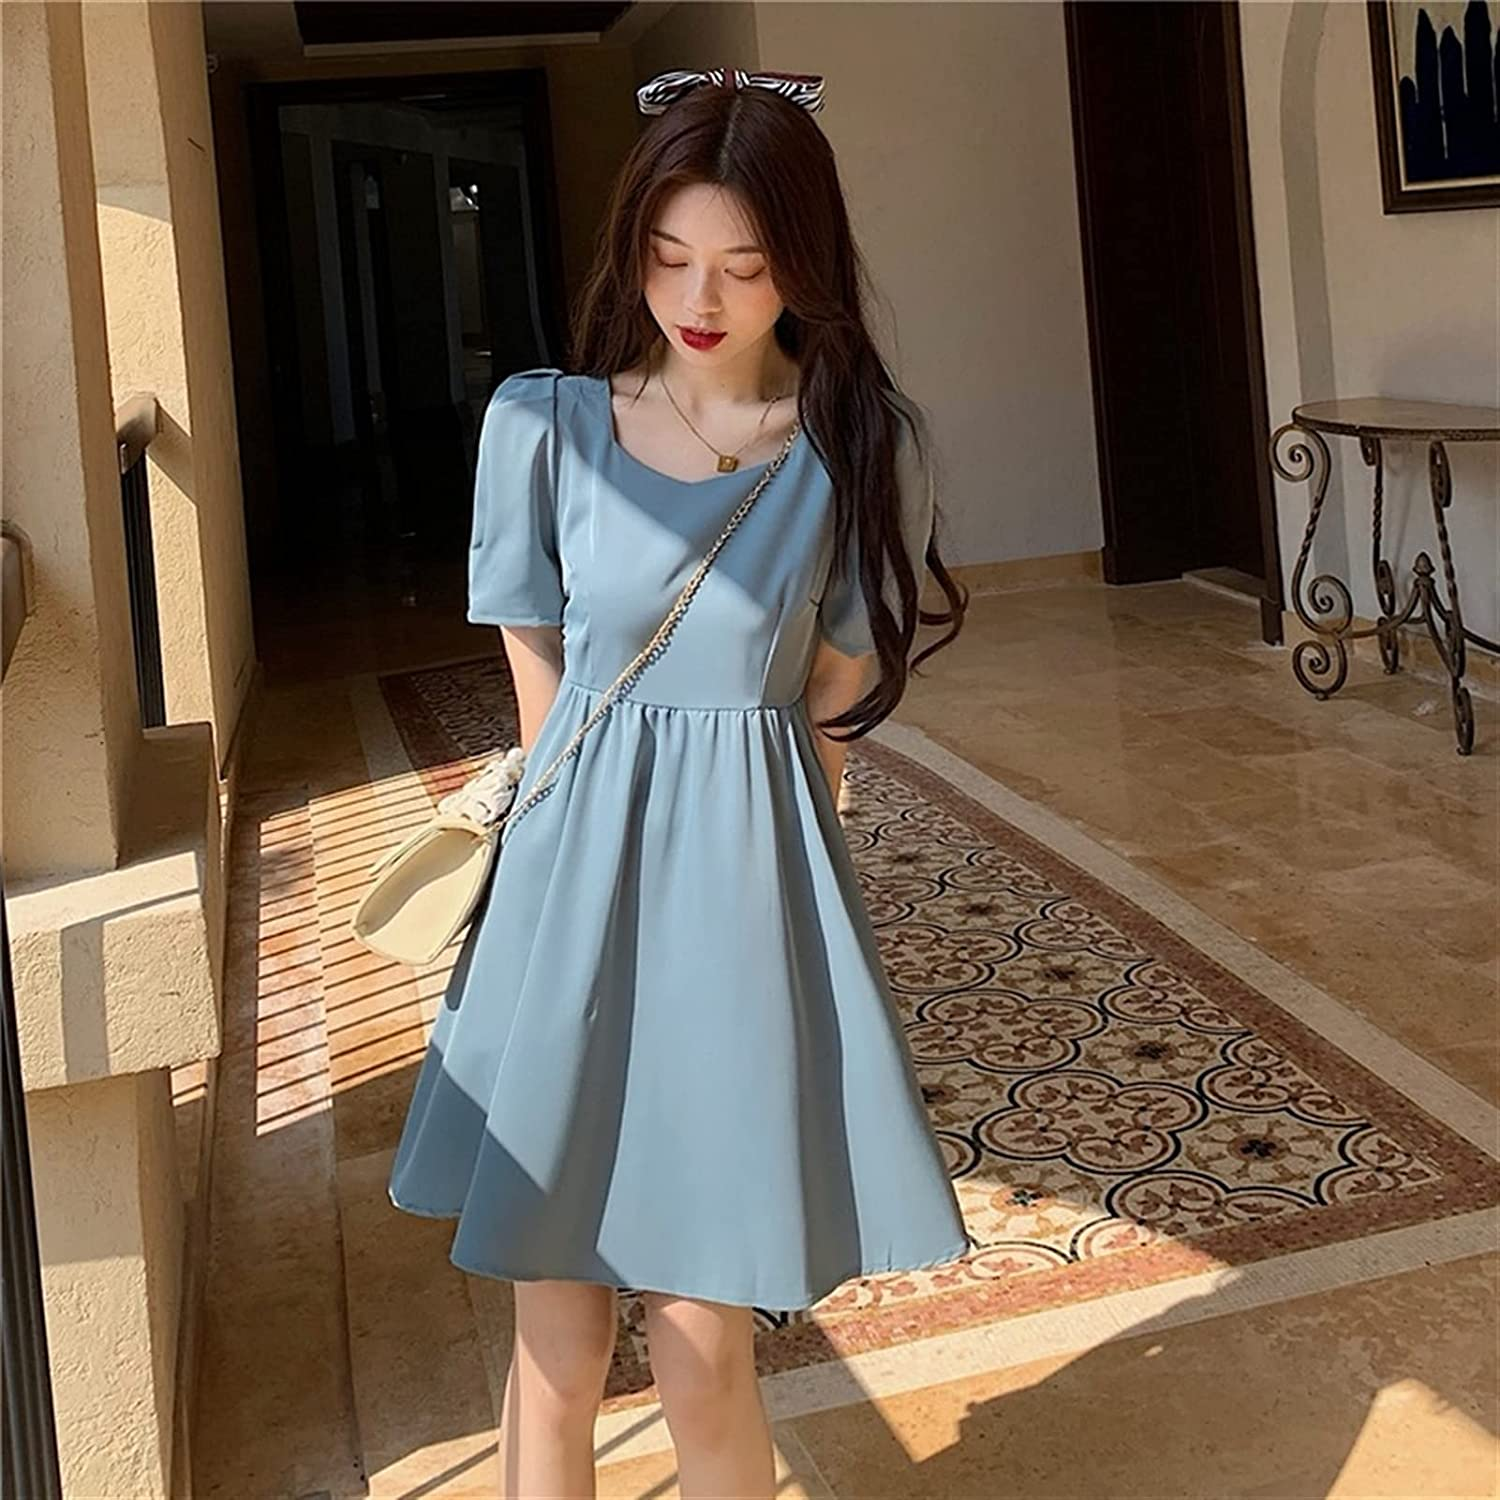 BangHaa Hollow Chain Dress On The Back, Round Neck Waist, Slim A-line Dress, Cute Small Skirt with Bow On The Back for Beach Vacation (Color : Blue, Size : Large)